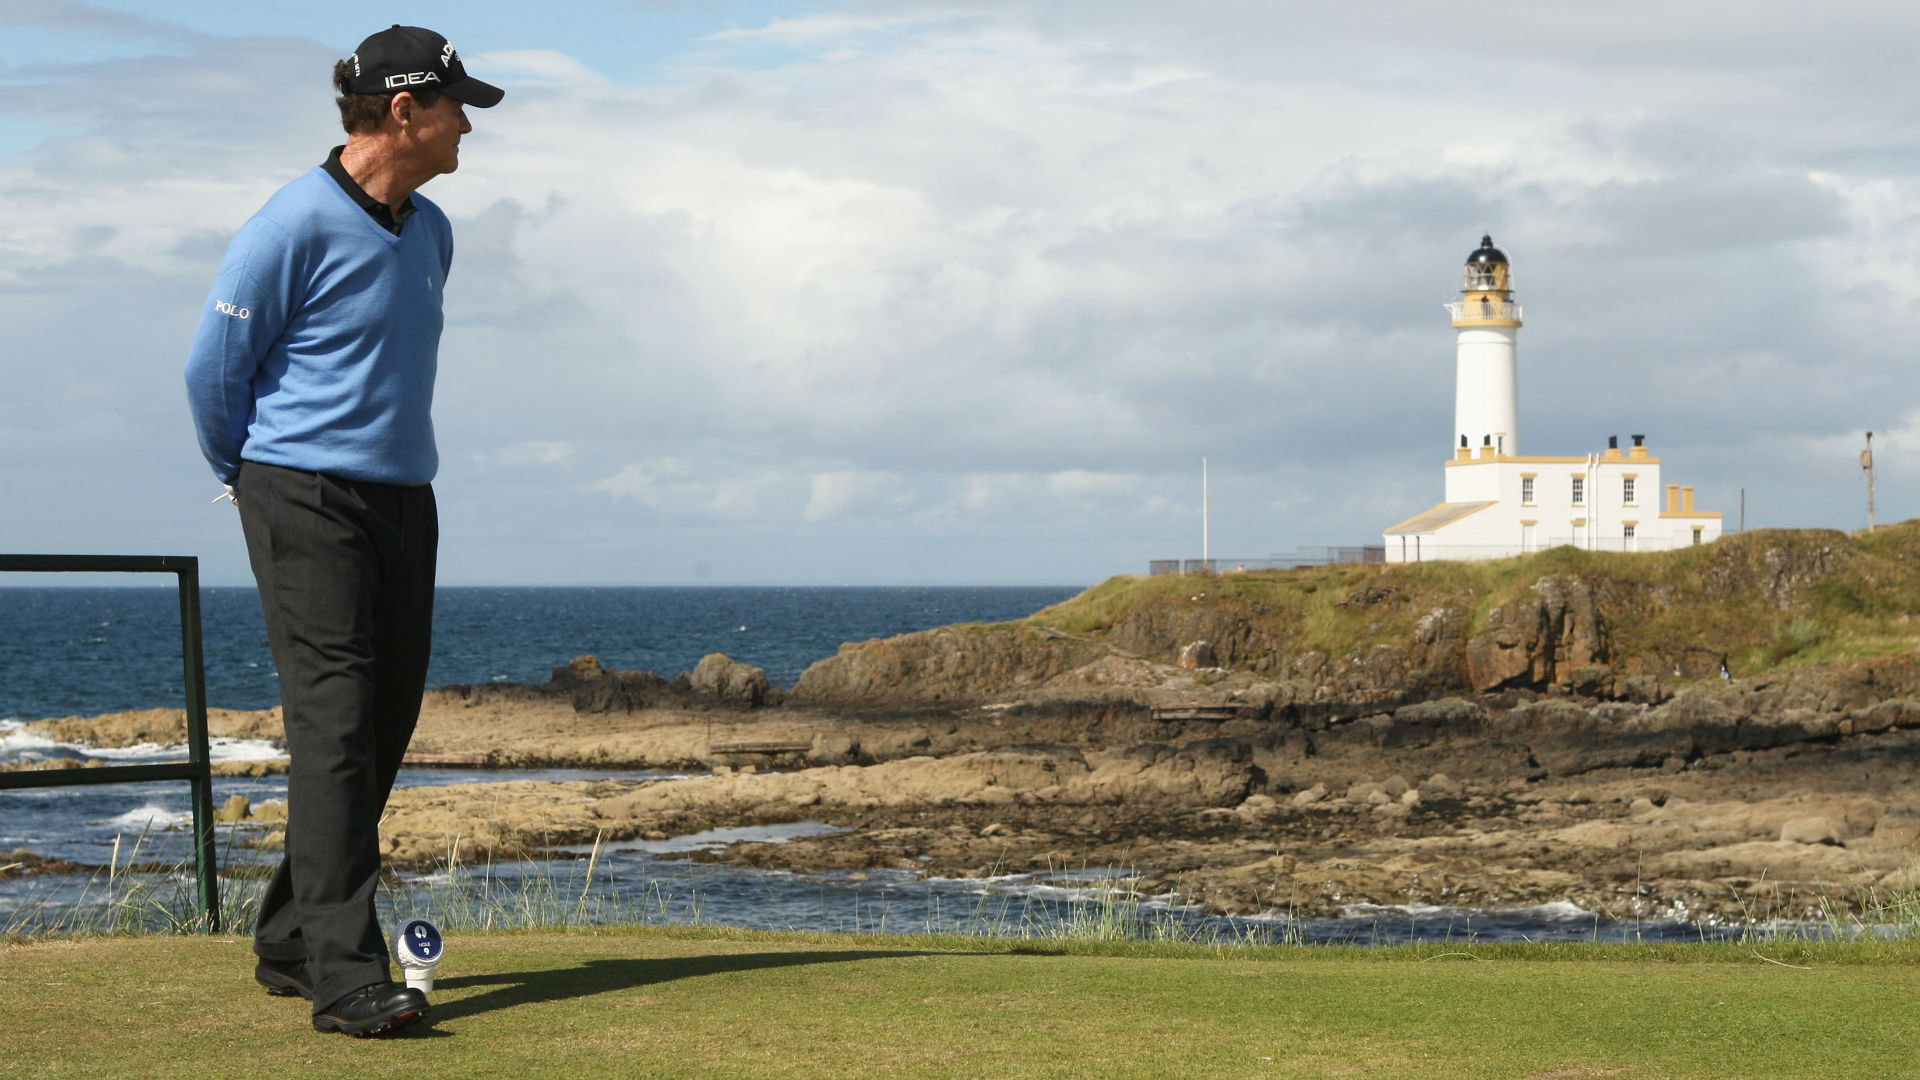 Tom Watson at 70: The 2009 Open, Turnberry and the greatest fairy tale never told